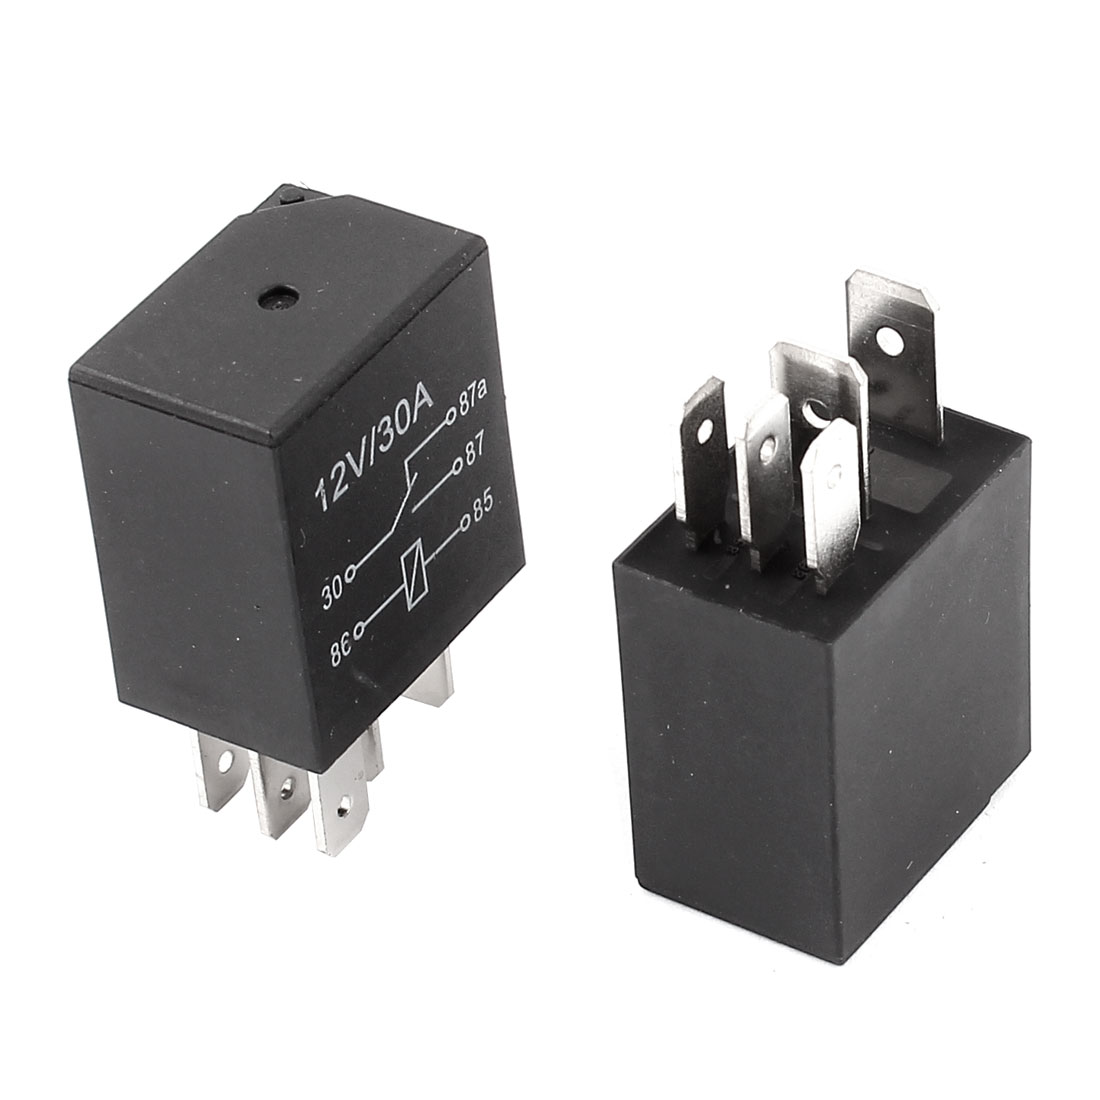 2pcs 5 Pin DC 12V Coil Voltage 30A SPDT Automotive Car Power Relay